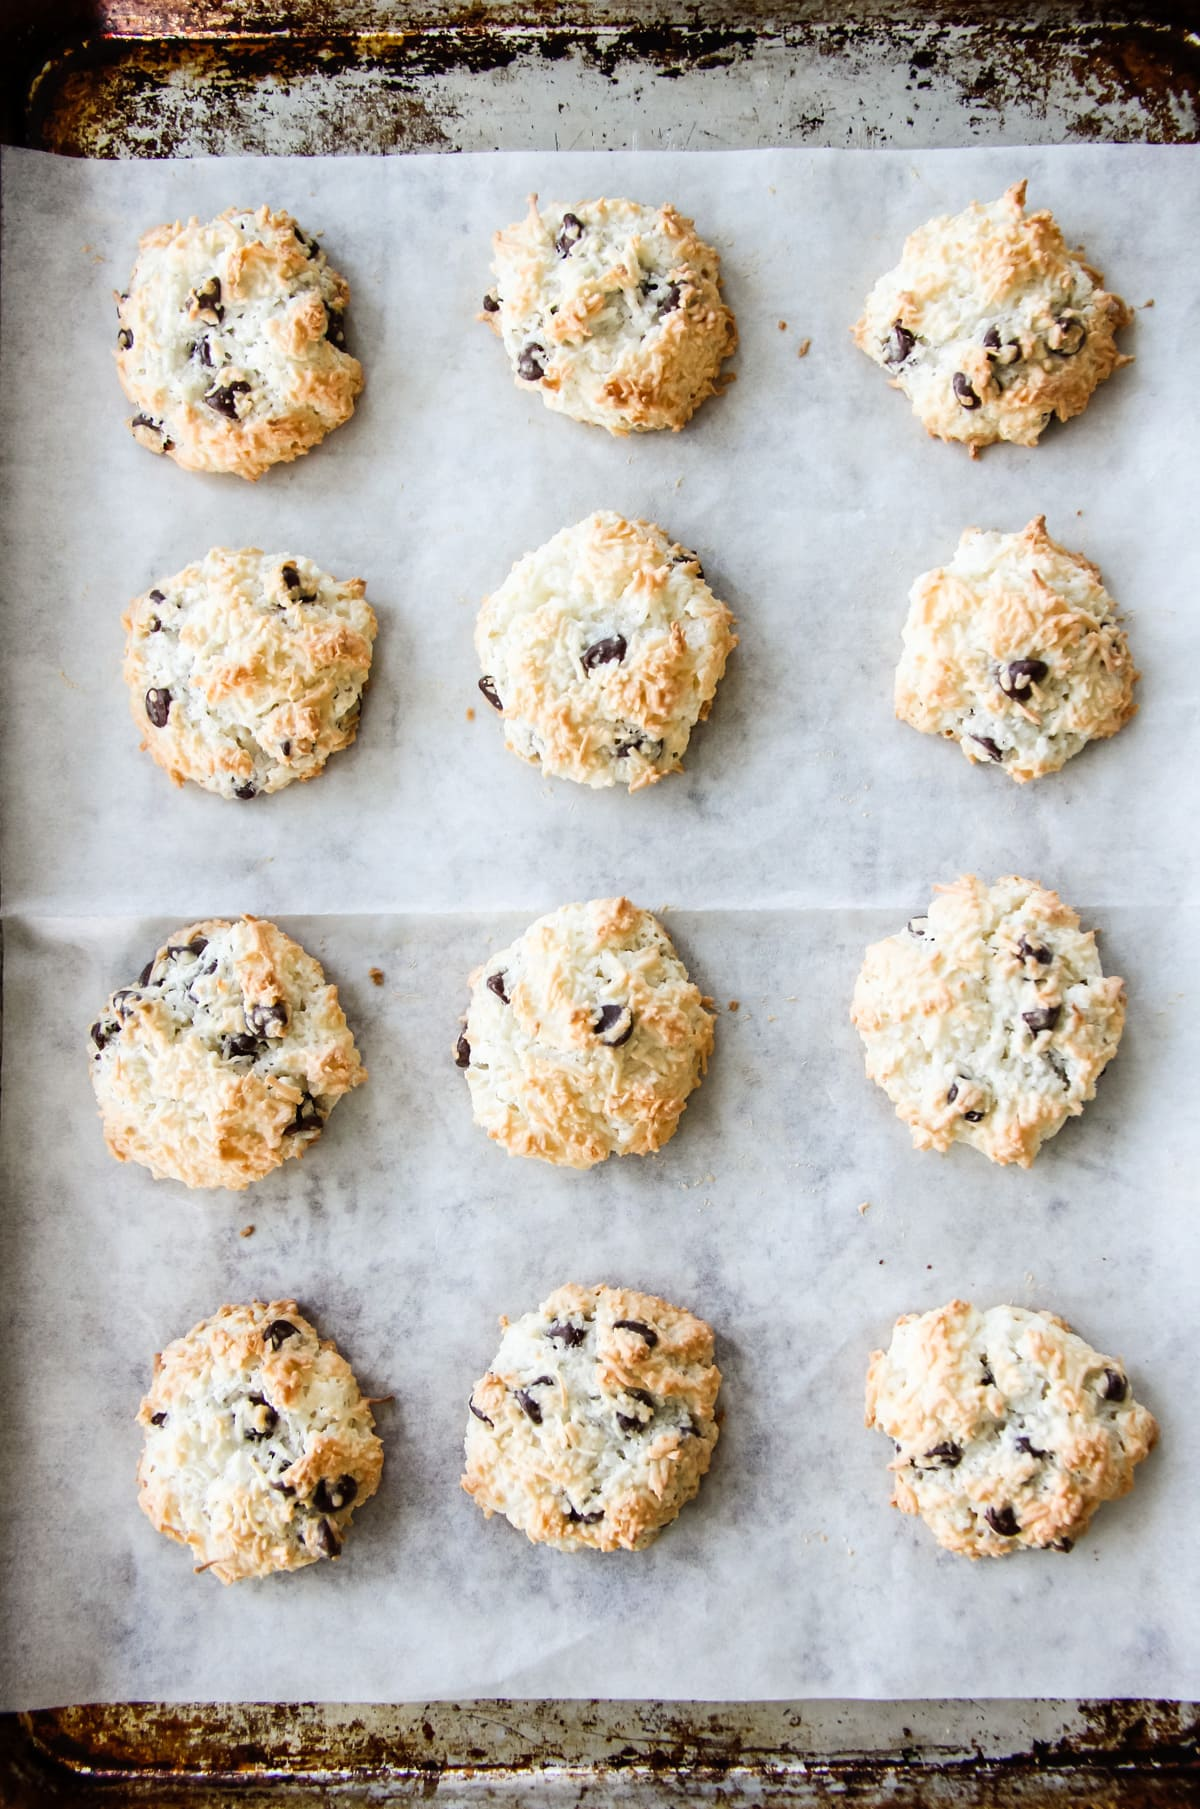 a top down view of freshly baked Chocolate Chip Coconut Macaroons on a parchment paper lined cookie sheet